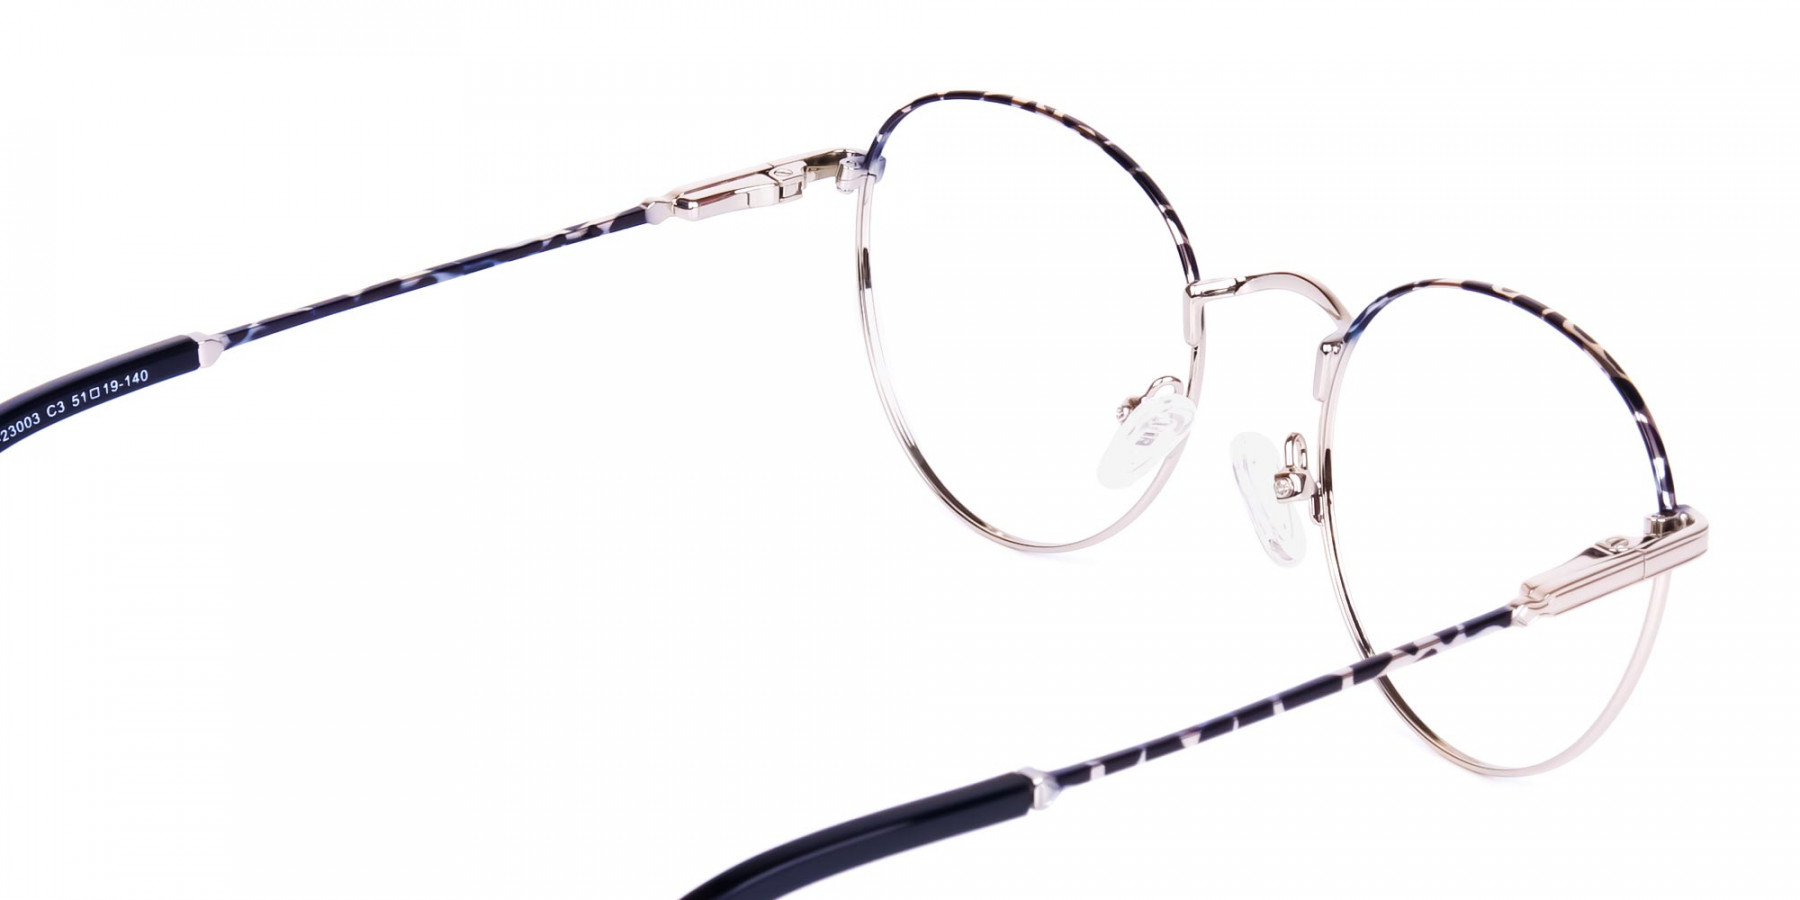 Silver-and-Marble-Tortoise-Shell-Round-Glasses-1